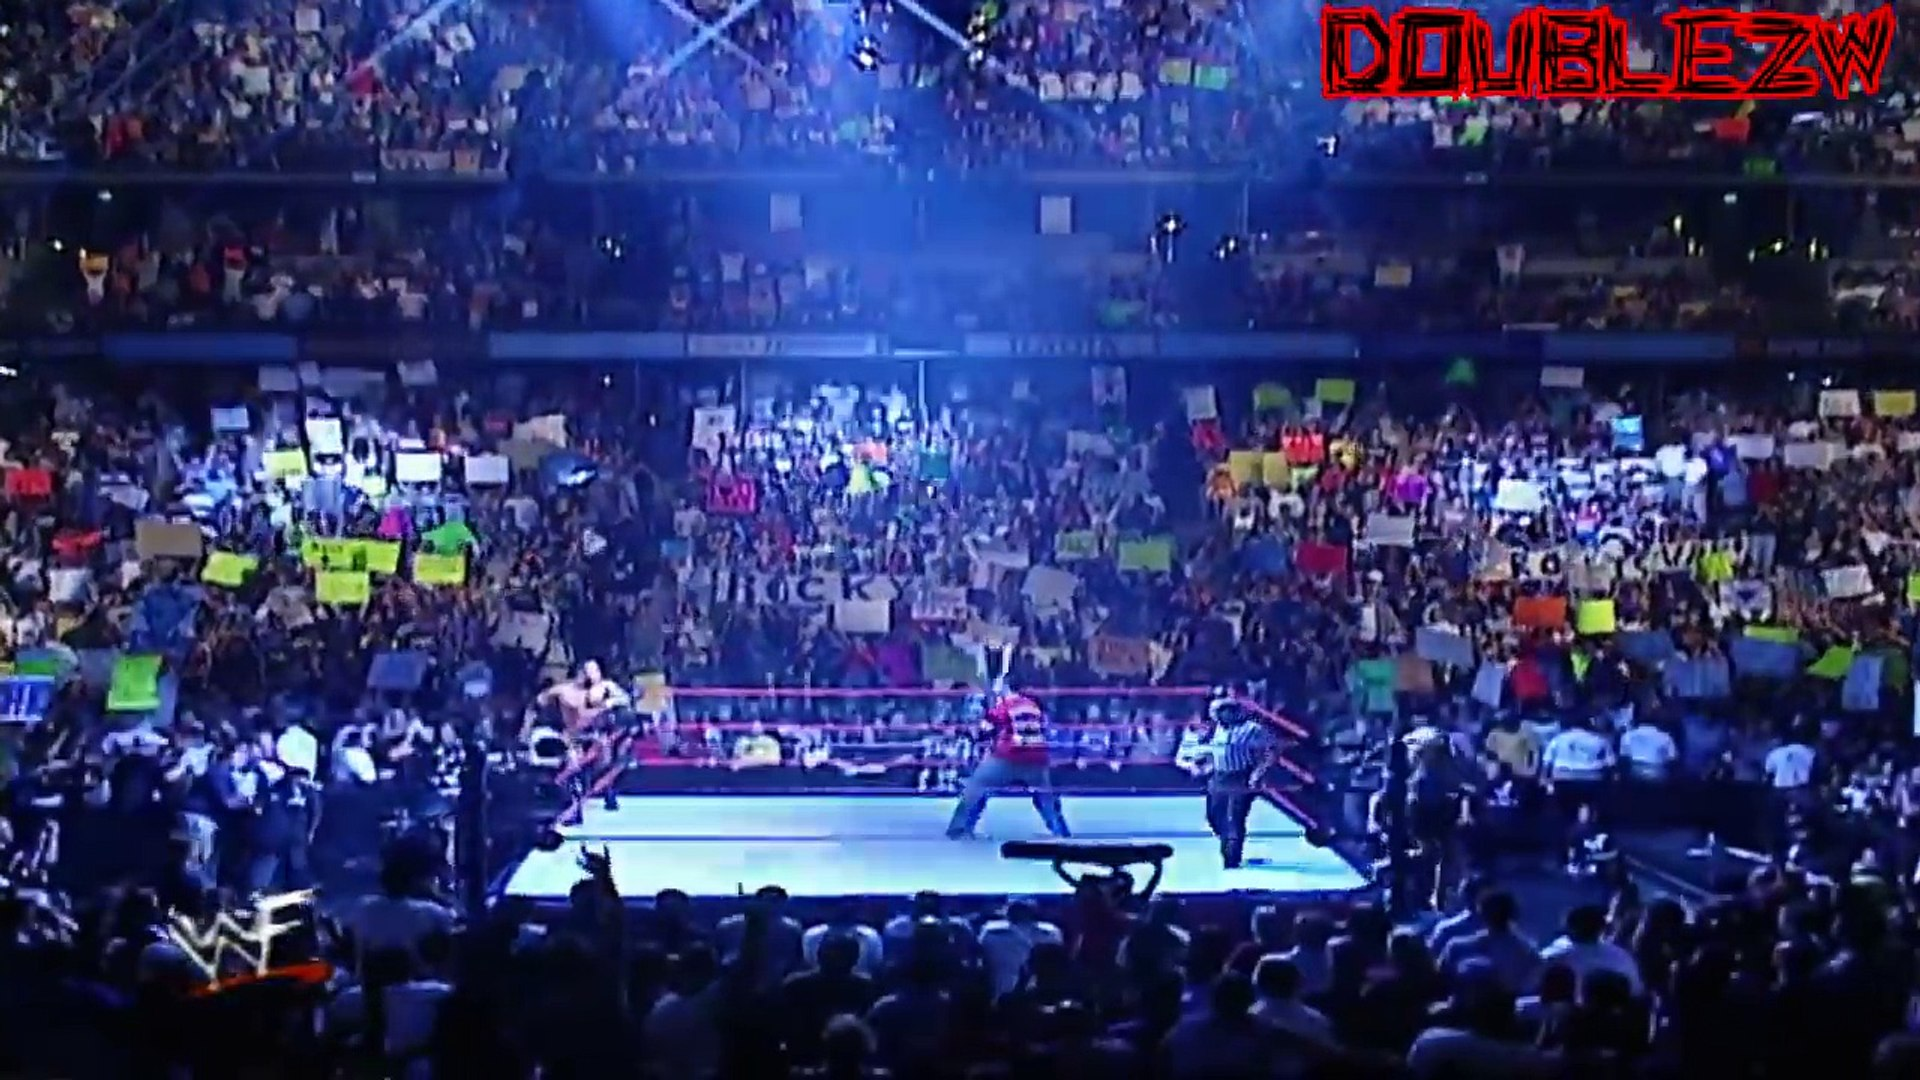 The Rock vs. Shane McMahon - Street Fight - 8-6-2001 Raw Part 1/2